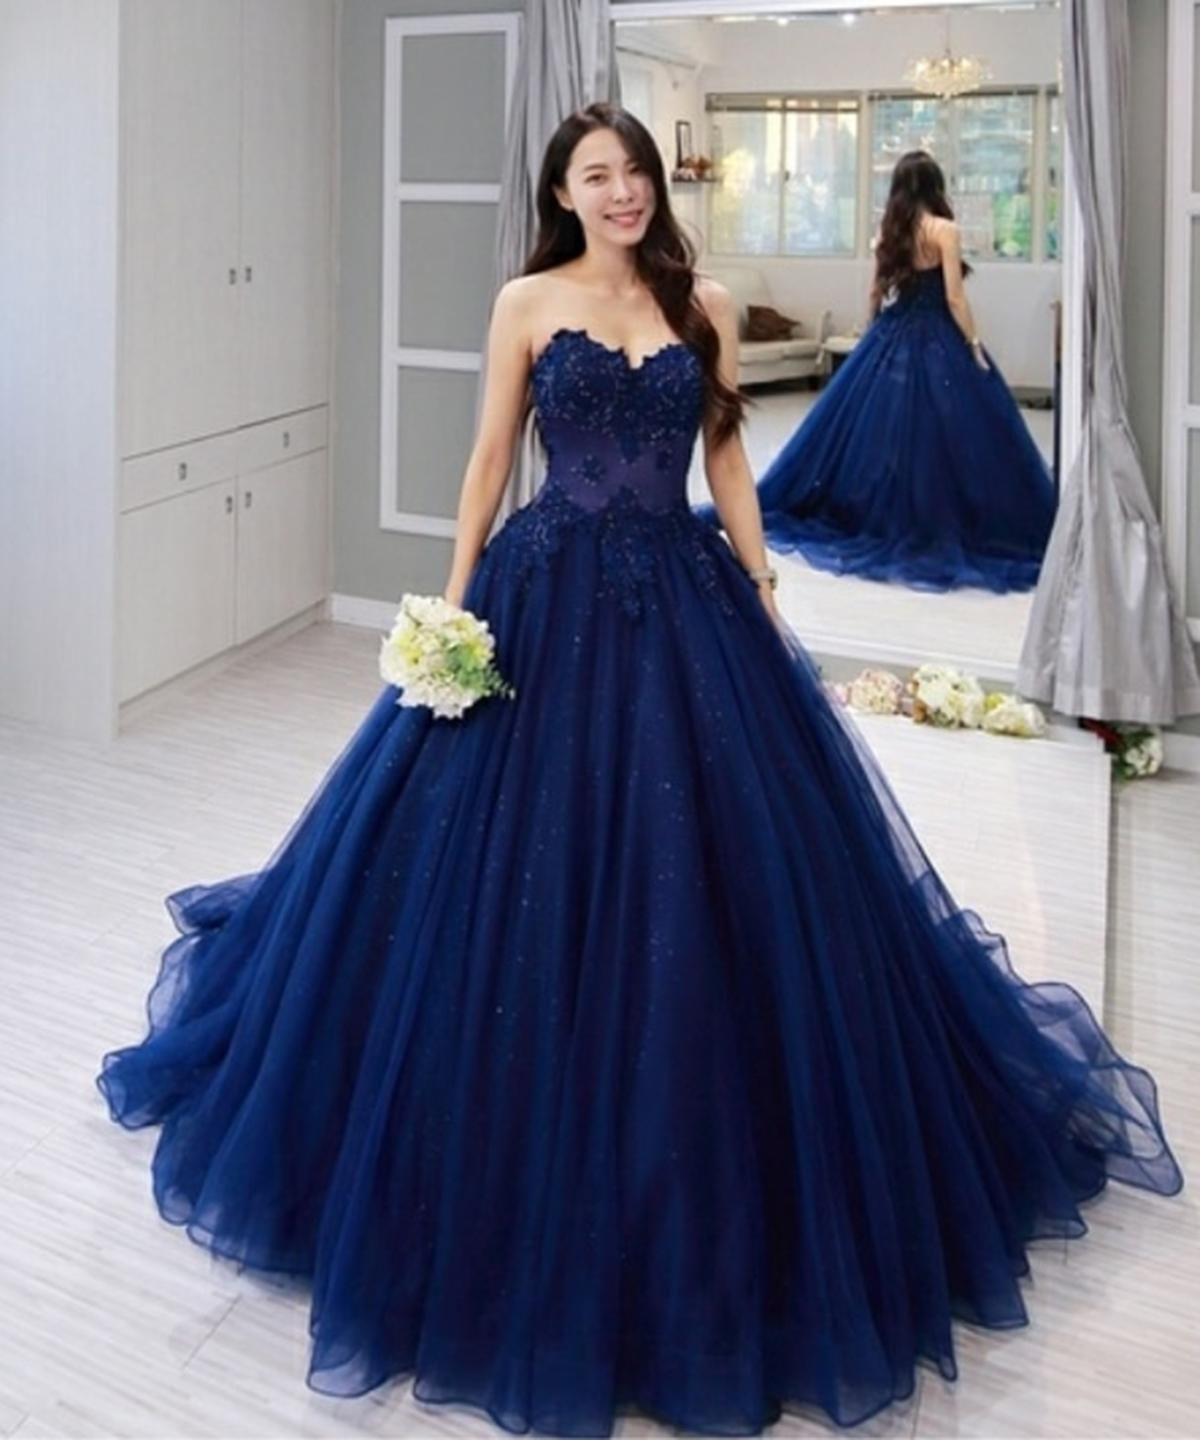 Royal Blue Sparkle Tulle Prom Evening Gowns Quinceanera Dresses Blue Ball Gowns Prom Prom Dresses Ball Gown [ 1440 x 1200 Pixel ]